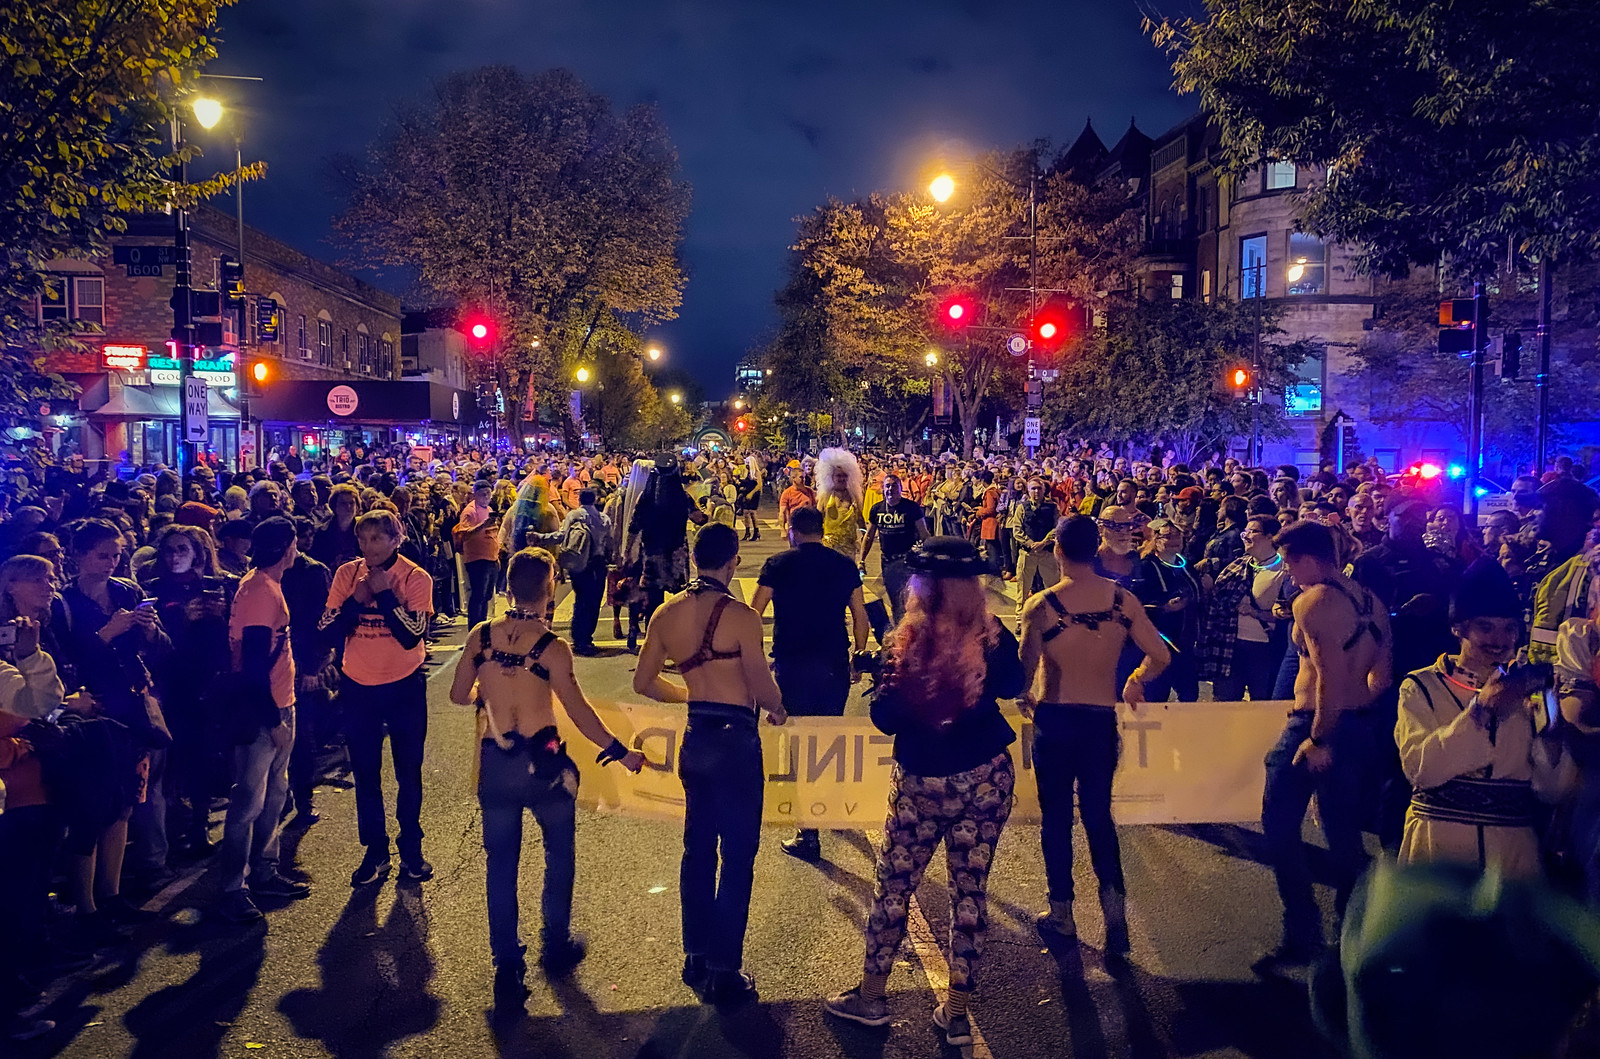 Photos: 2019 17th Street High Heel Race, Washington, DC USA